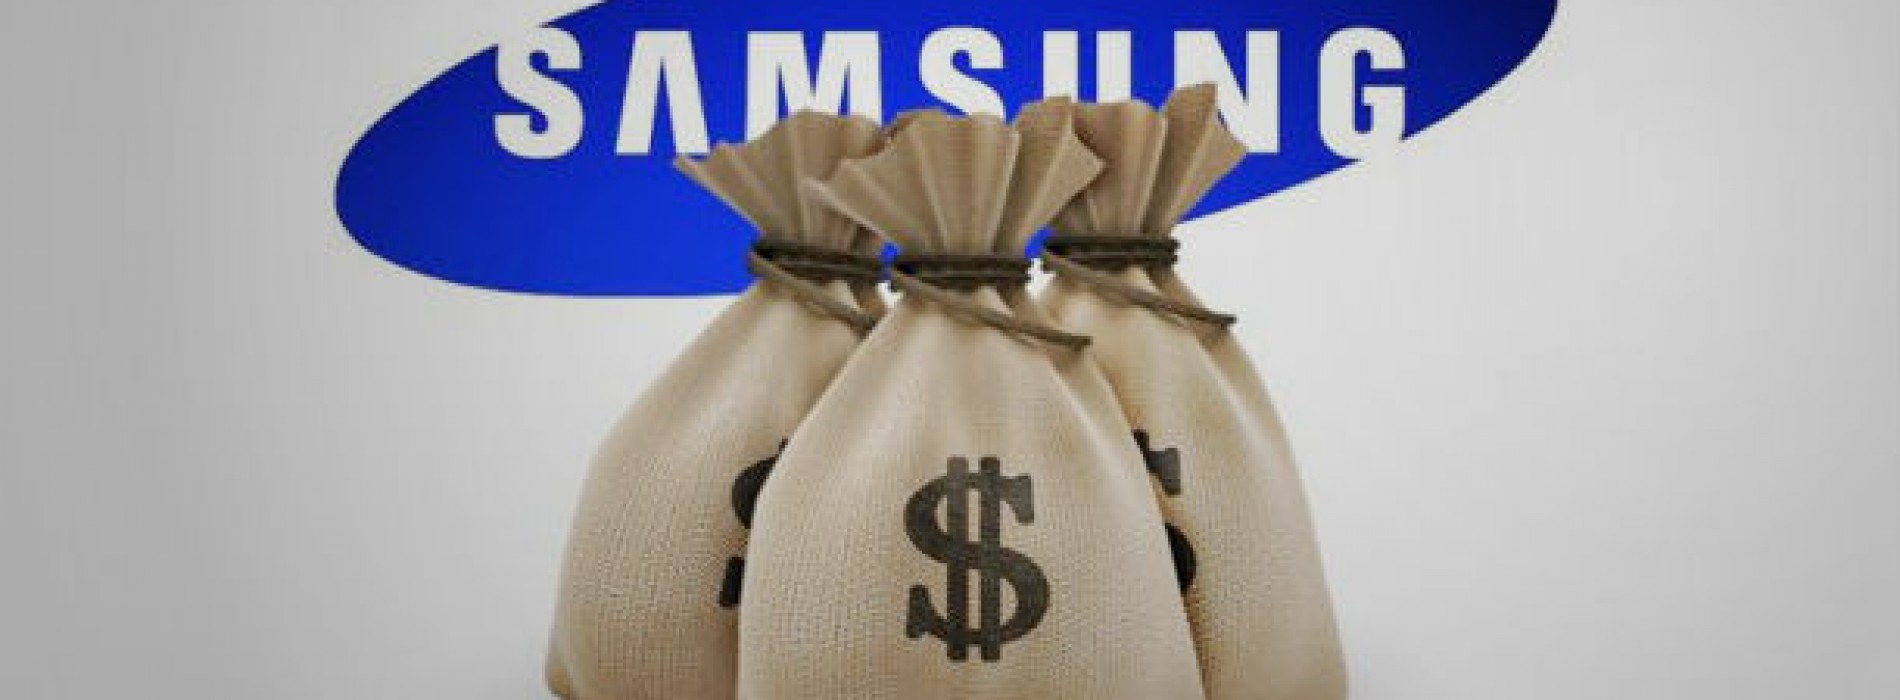 Samsung posts $6.4 billion net profit after Q1 earnings